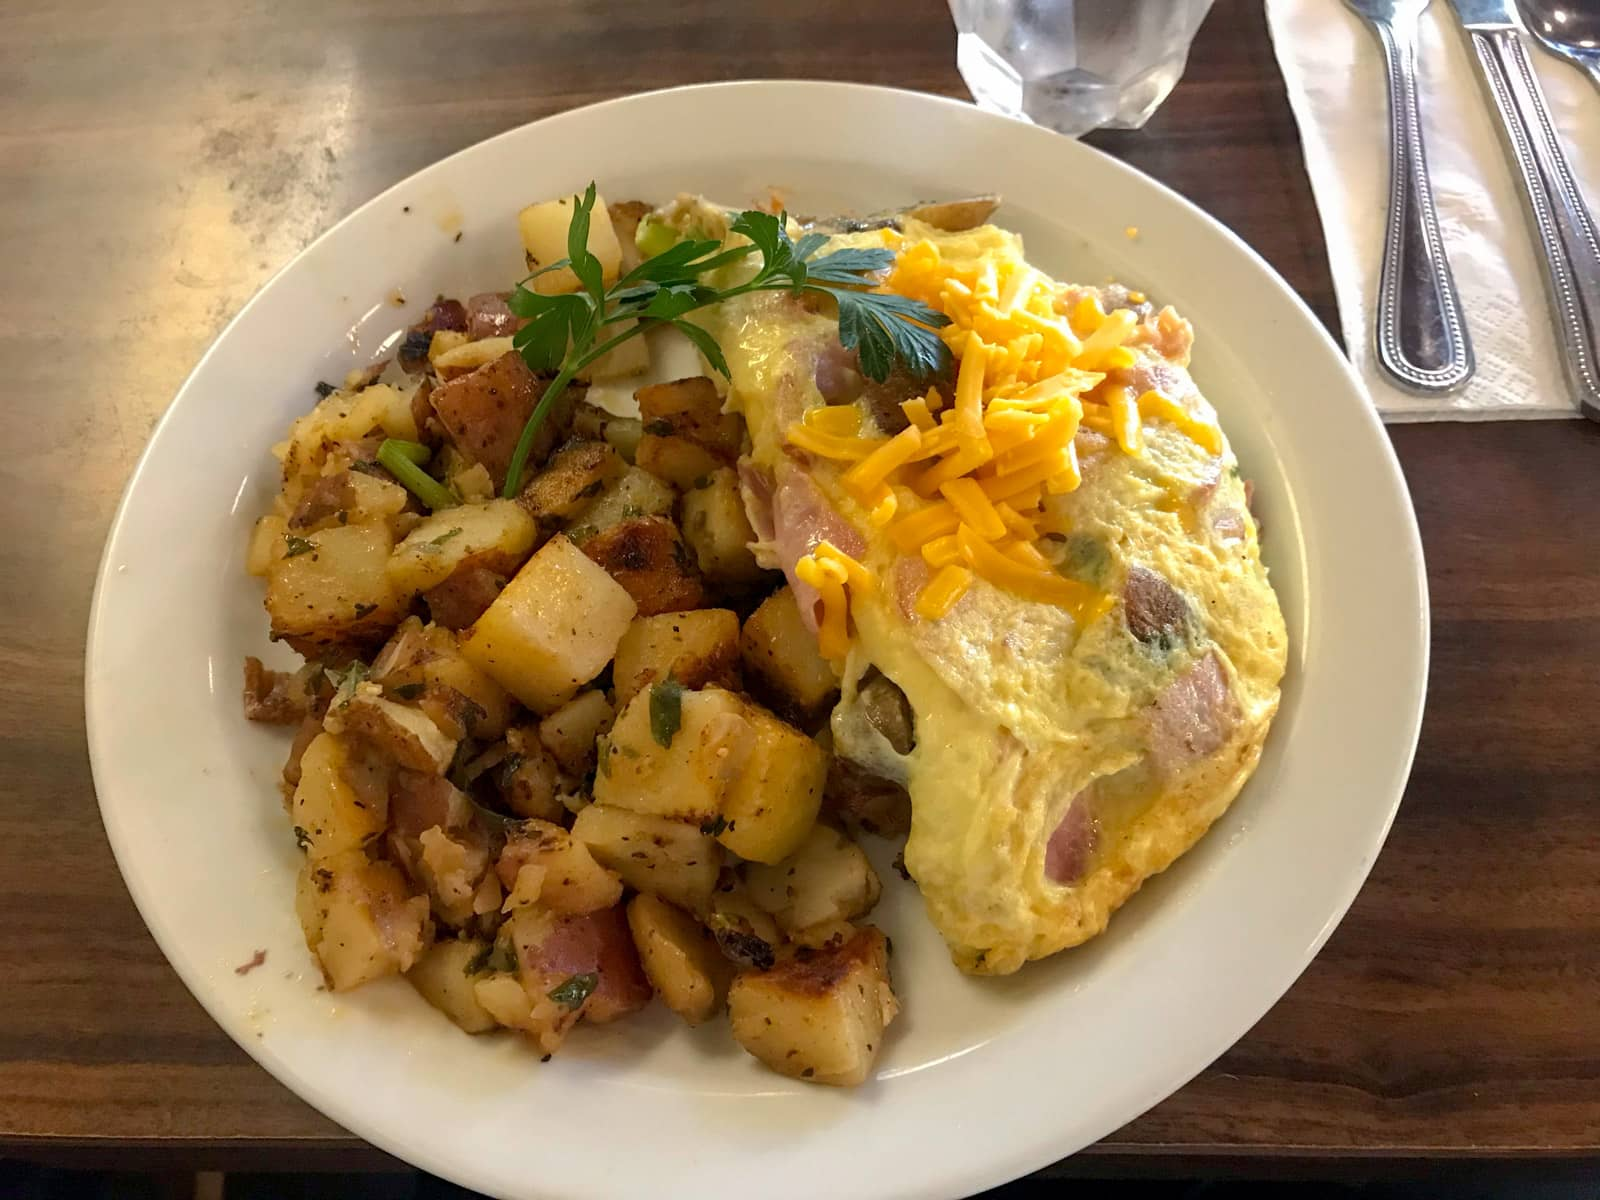 An omlette with ham, served alongside roast potatoes and topped with American cheese.